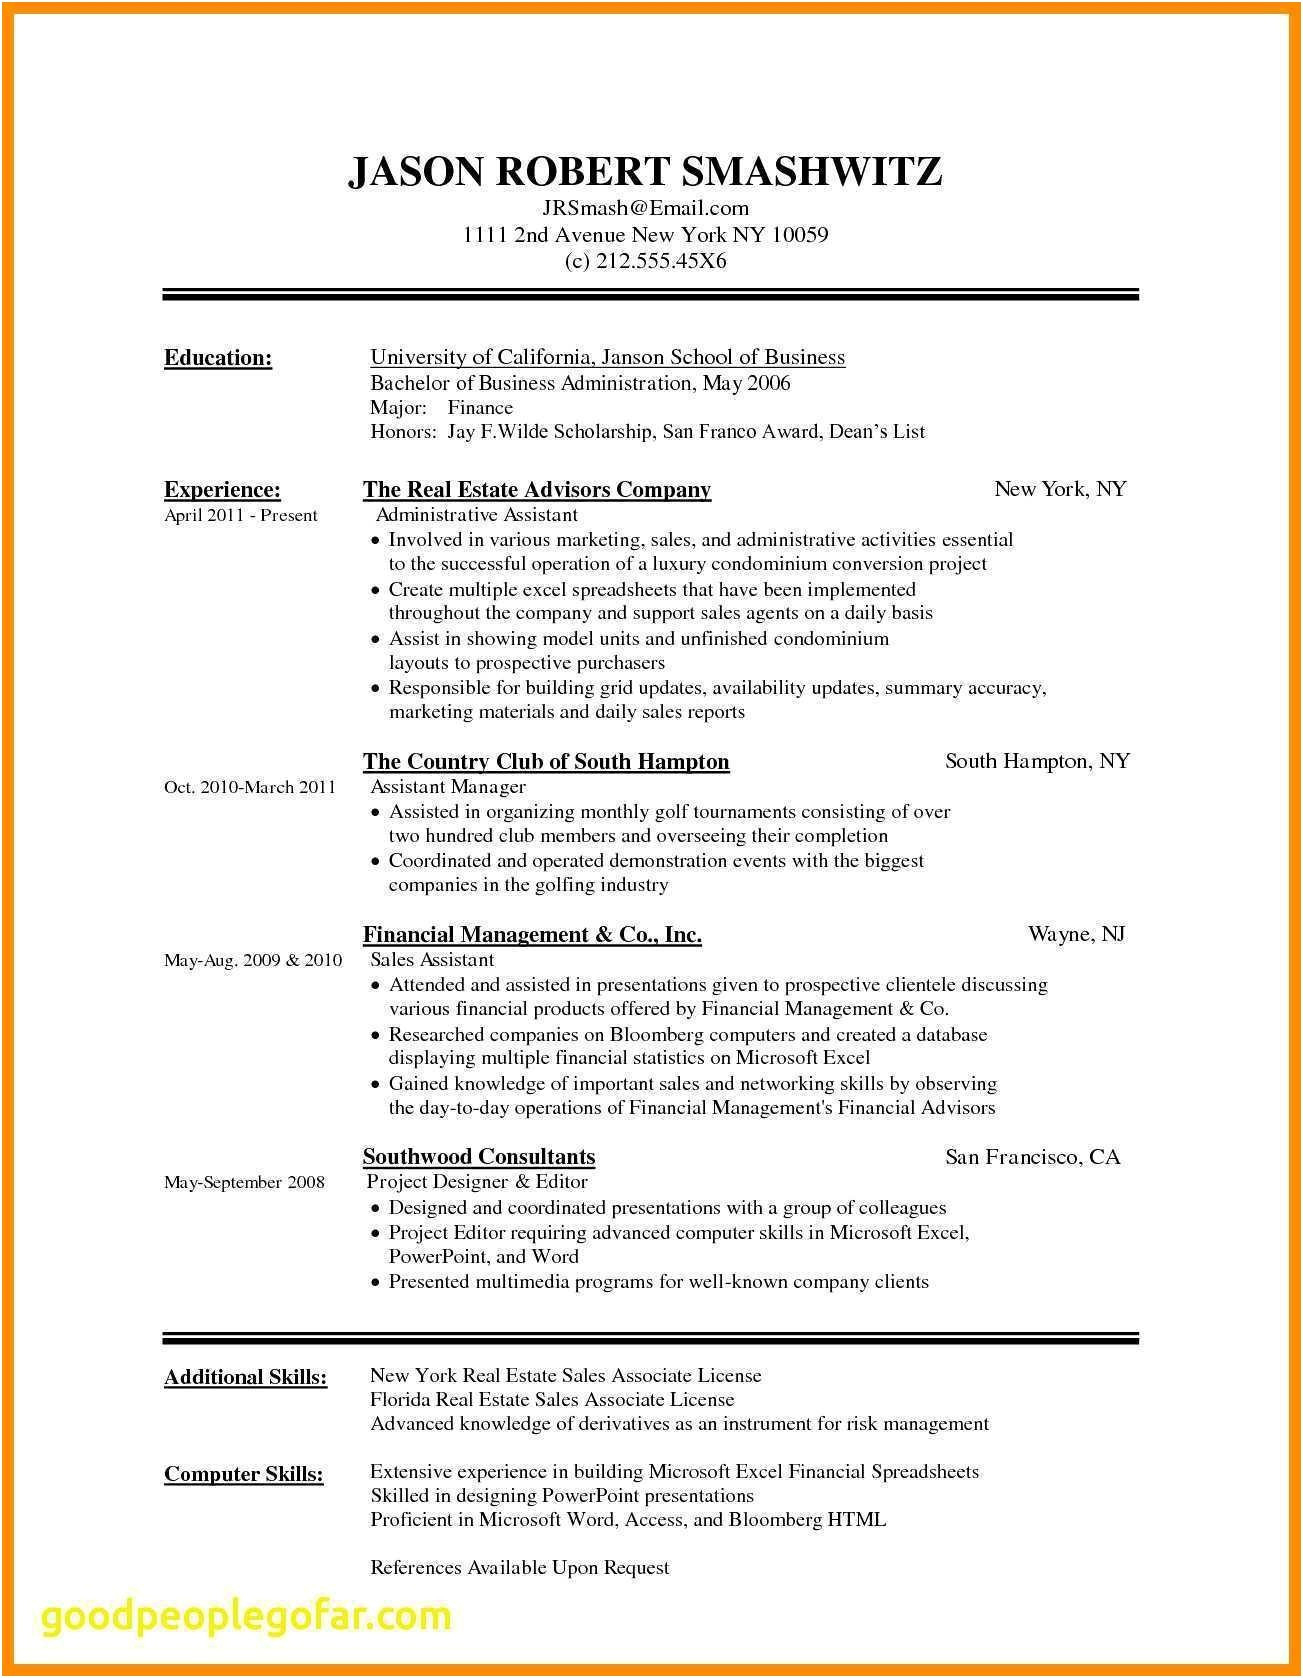 sample chronological resume template Collection-Lovely Chronological Resume Sample American Resume Sample New Student Chronological Resume Template Lovely Pr Resume 1-t